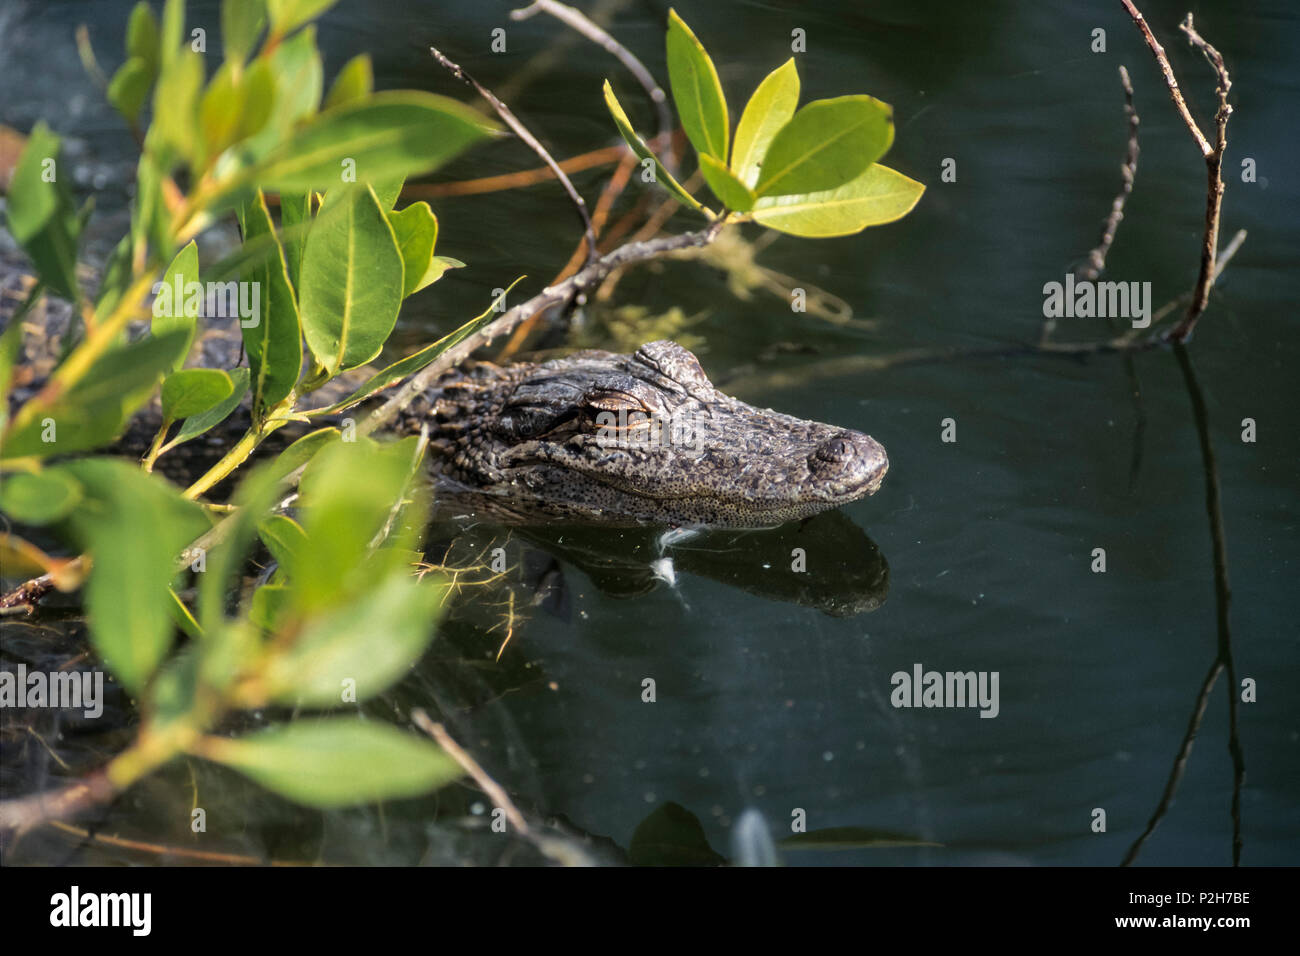 Les jeunes en Mississippi-Alligator les mangroves, Alligator mississippiensis, Ding Darling, Florida, USA Photo Stock